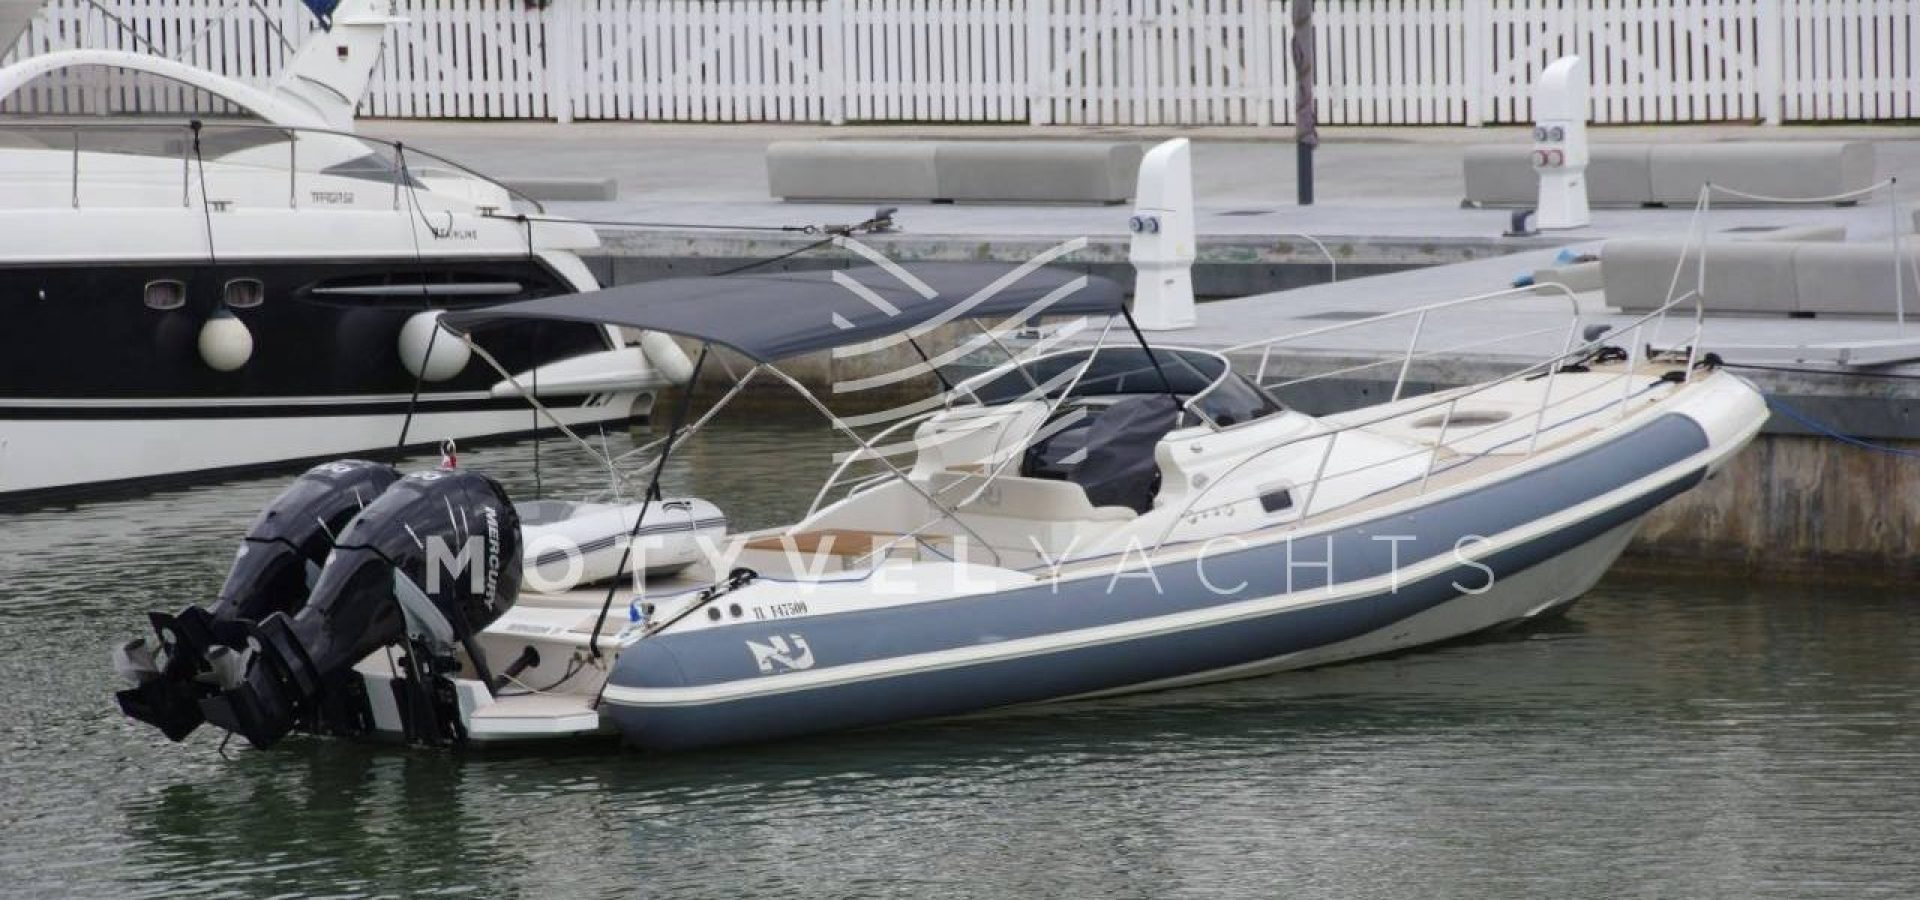 NUOVA JOLLY PRINCE 35 SPORT CABIN EXTERIOR WEB (2)